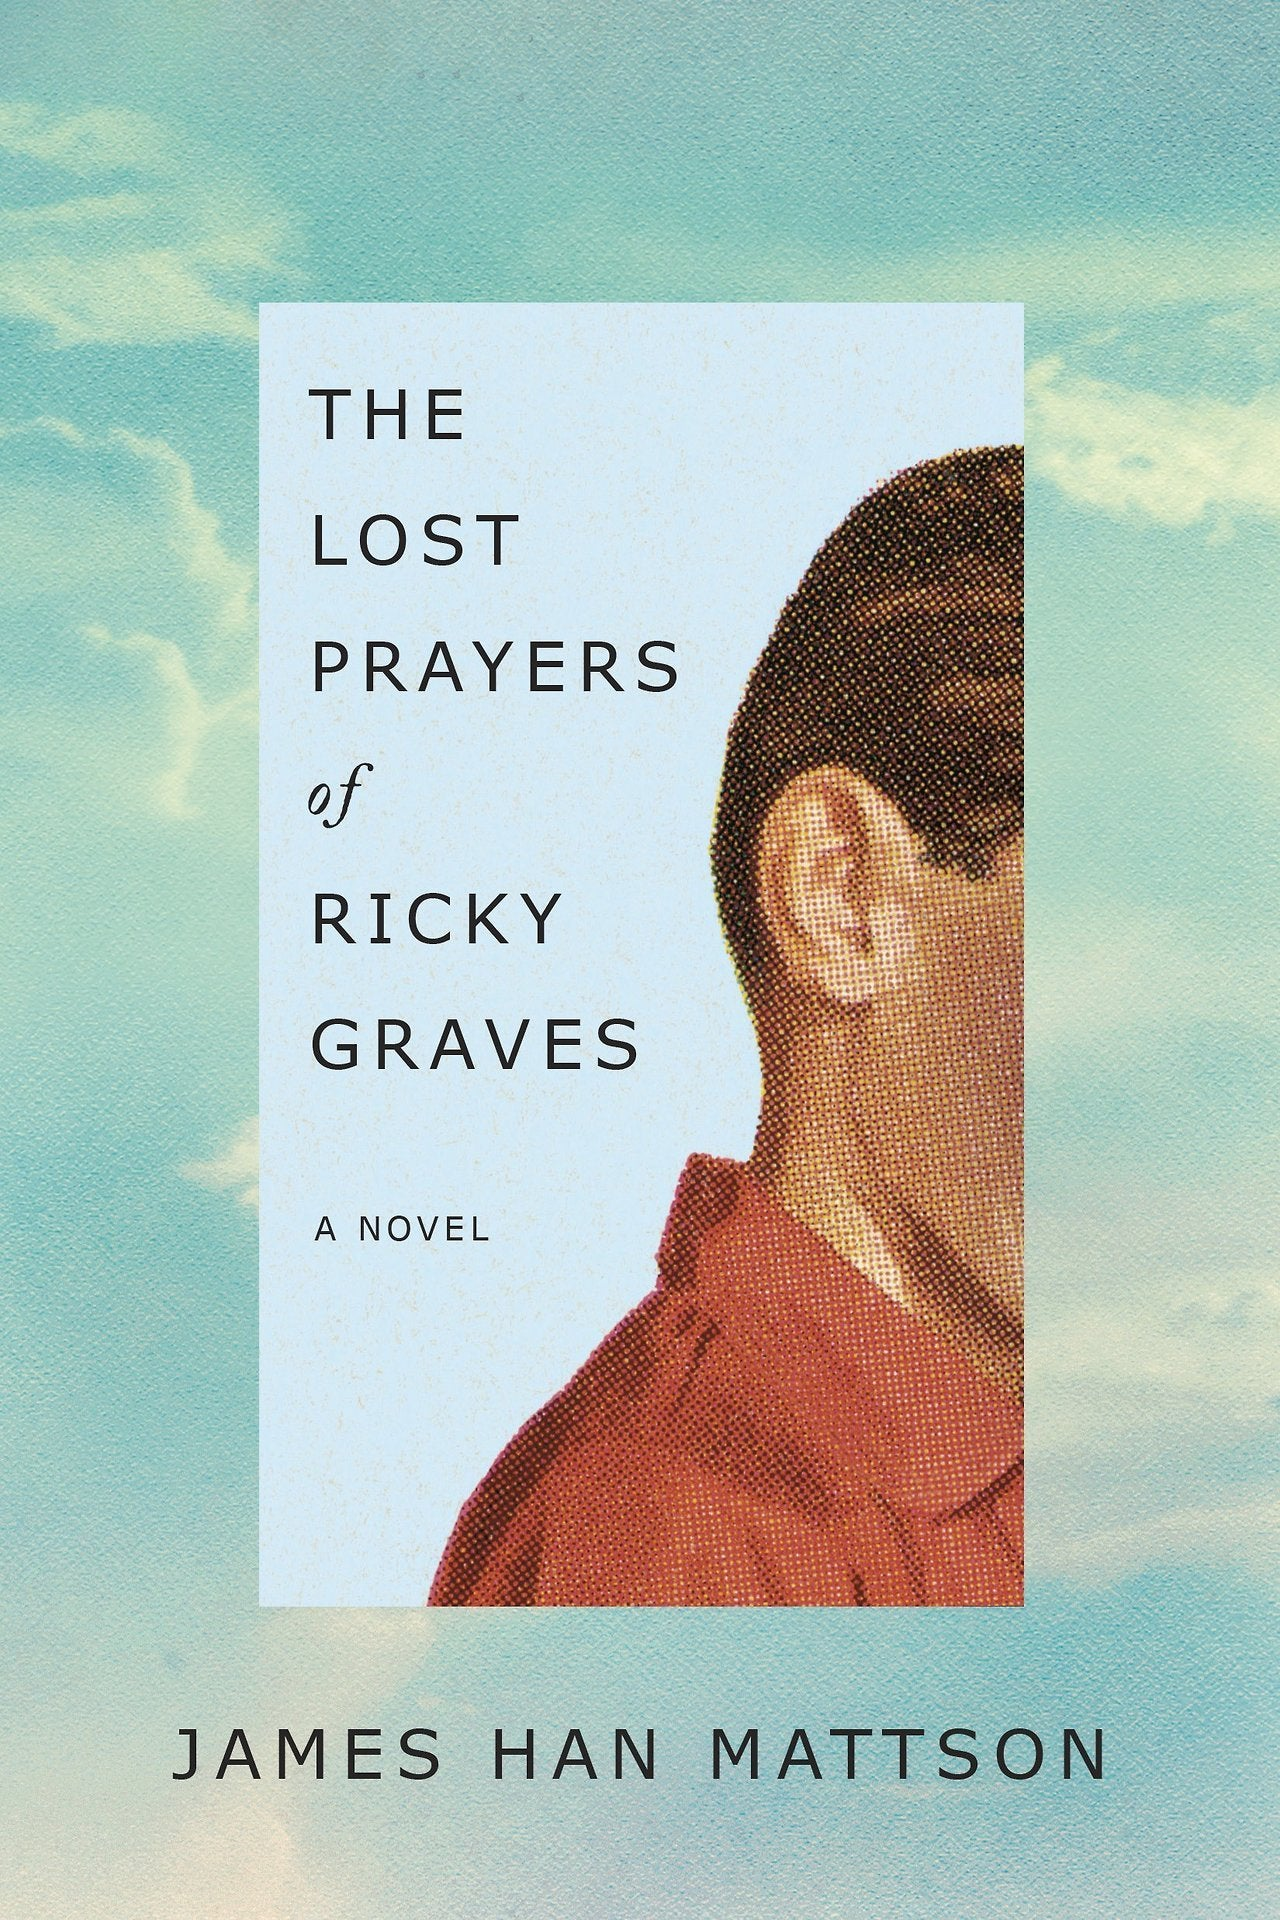 The Lost Prayers of Ricky Graves by James Han Mattson